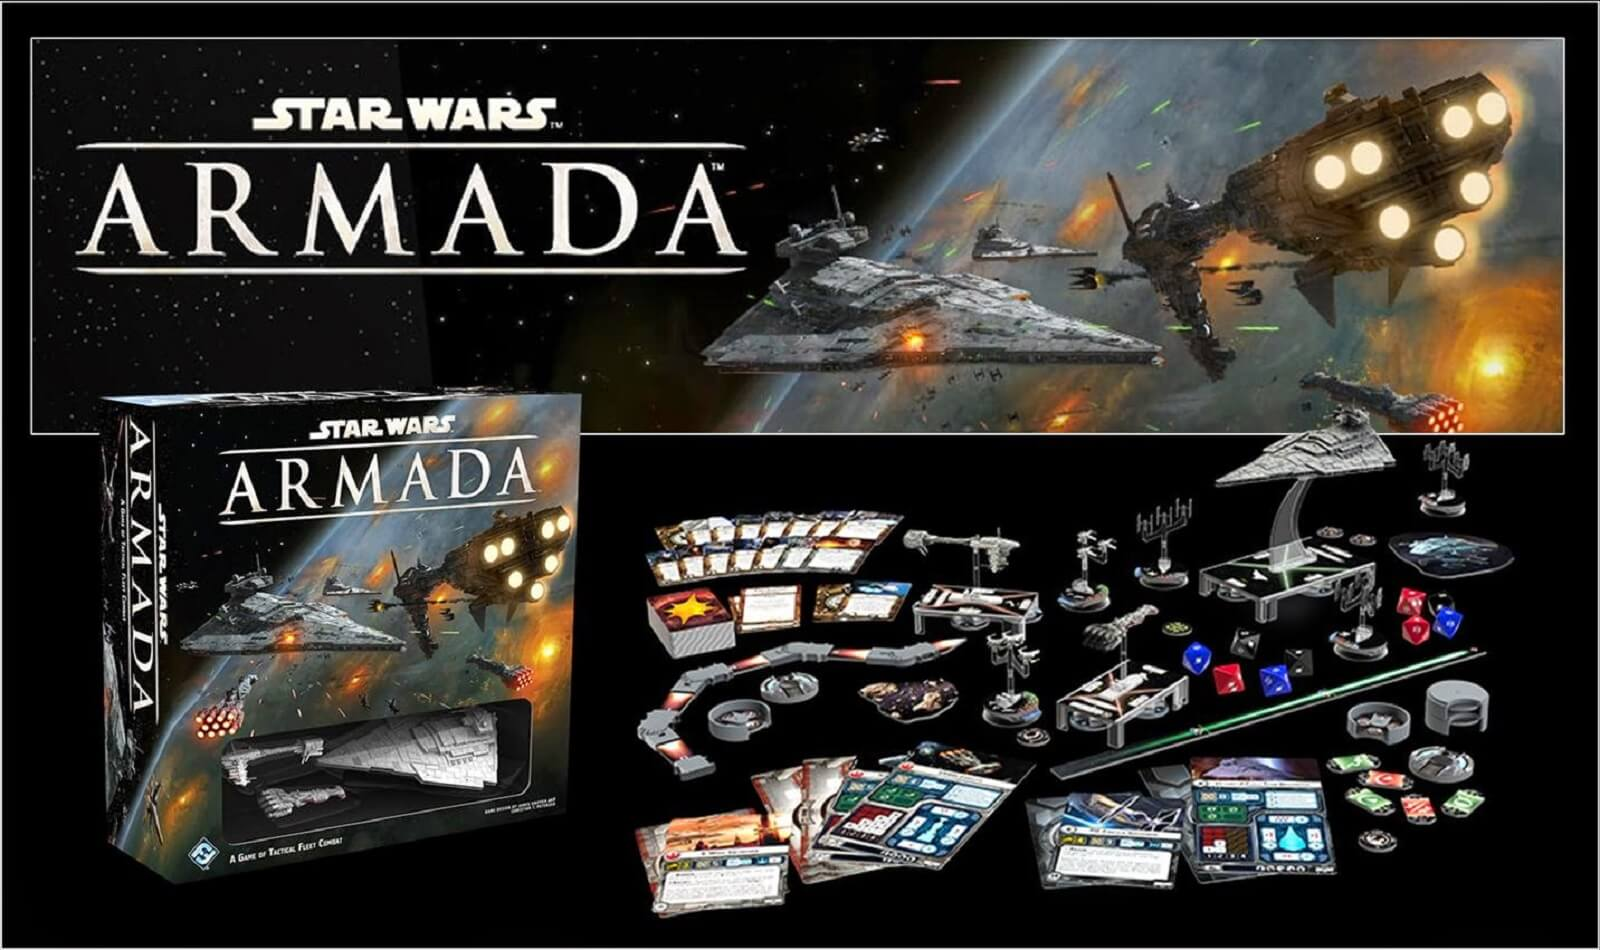 Star Wars Armada.